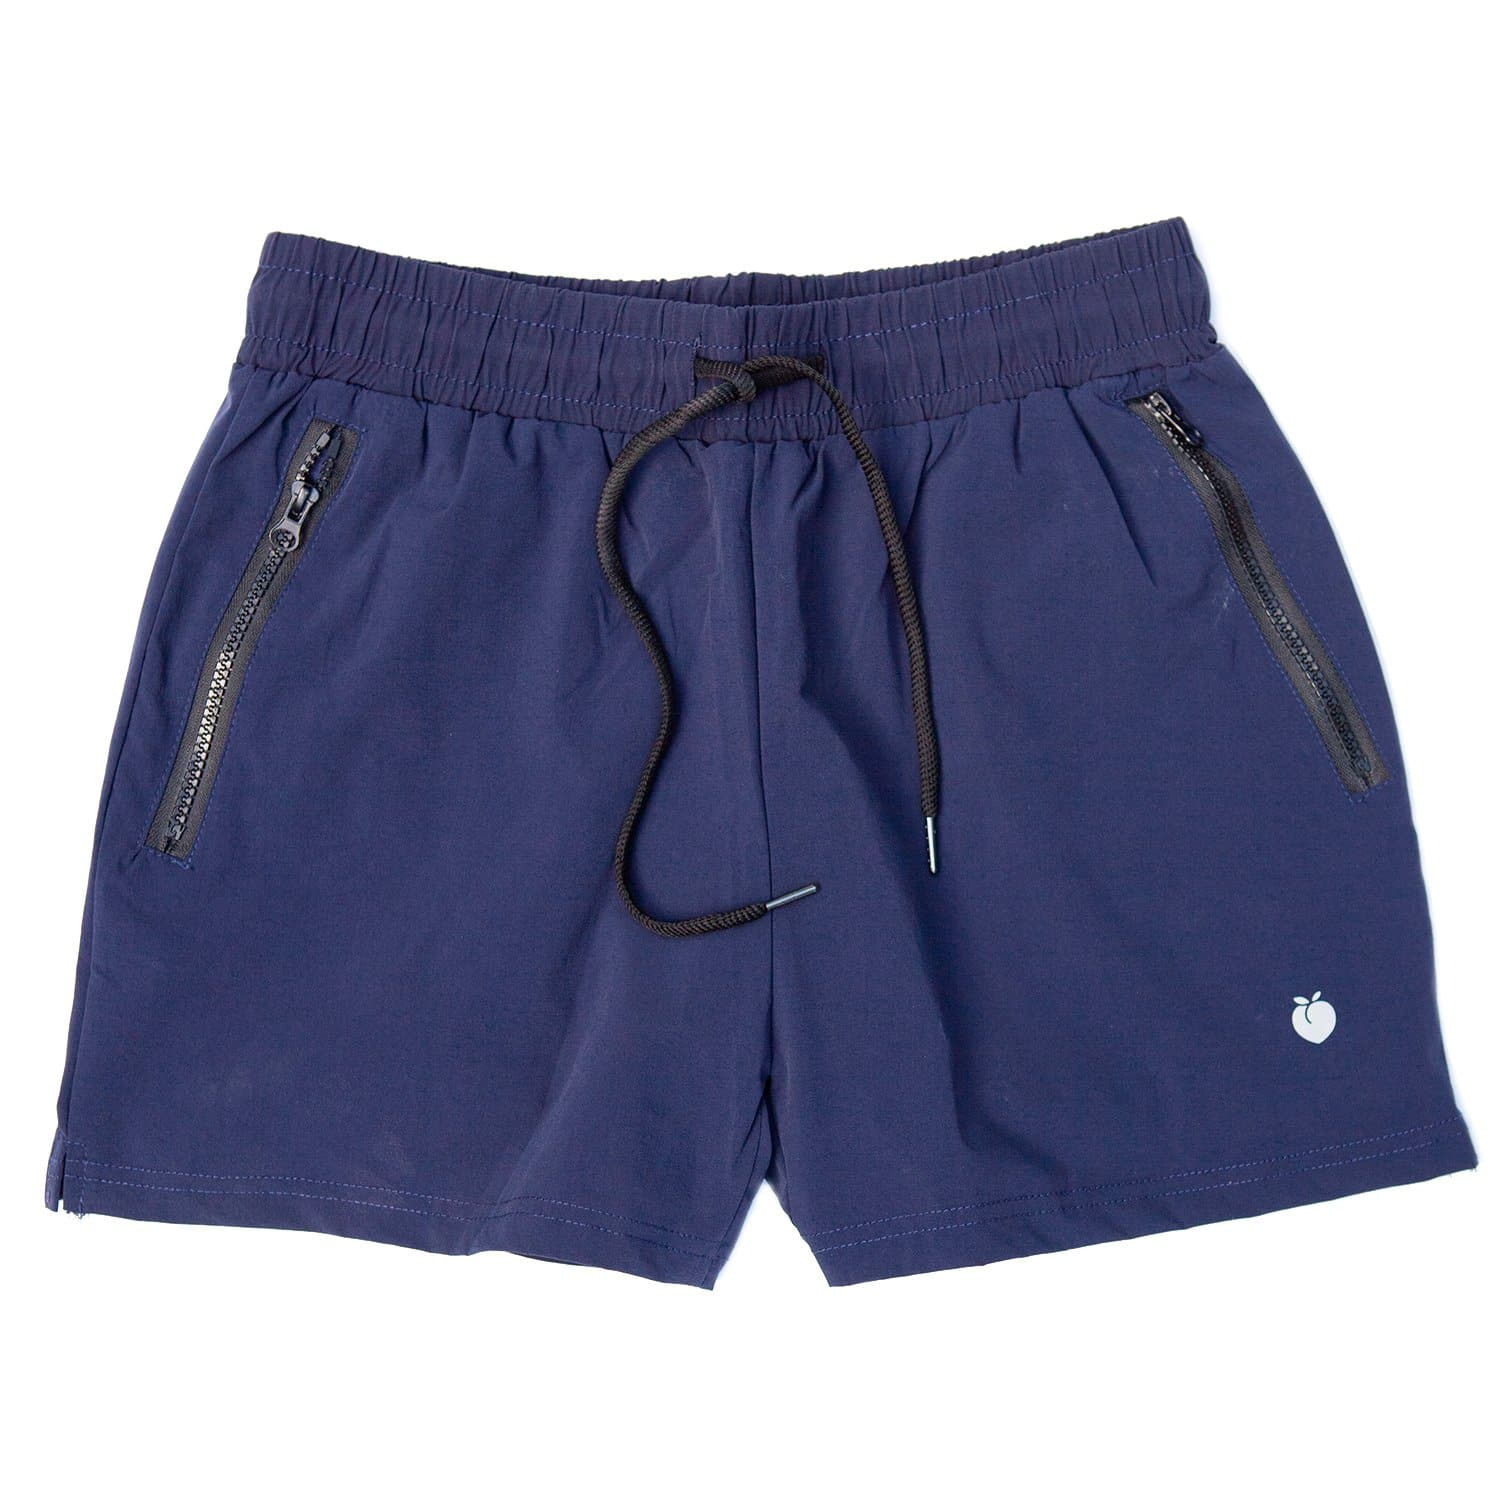 Men's Navy Blue Active Shorts